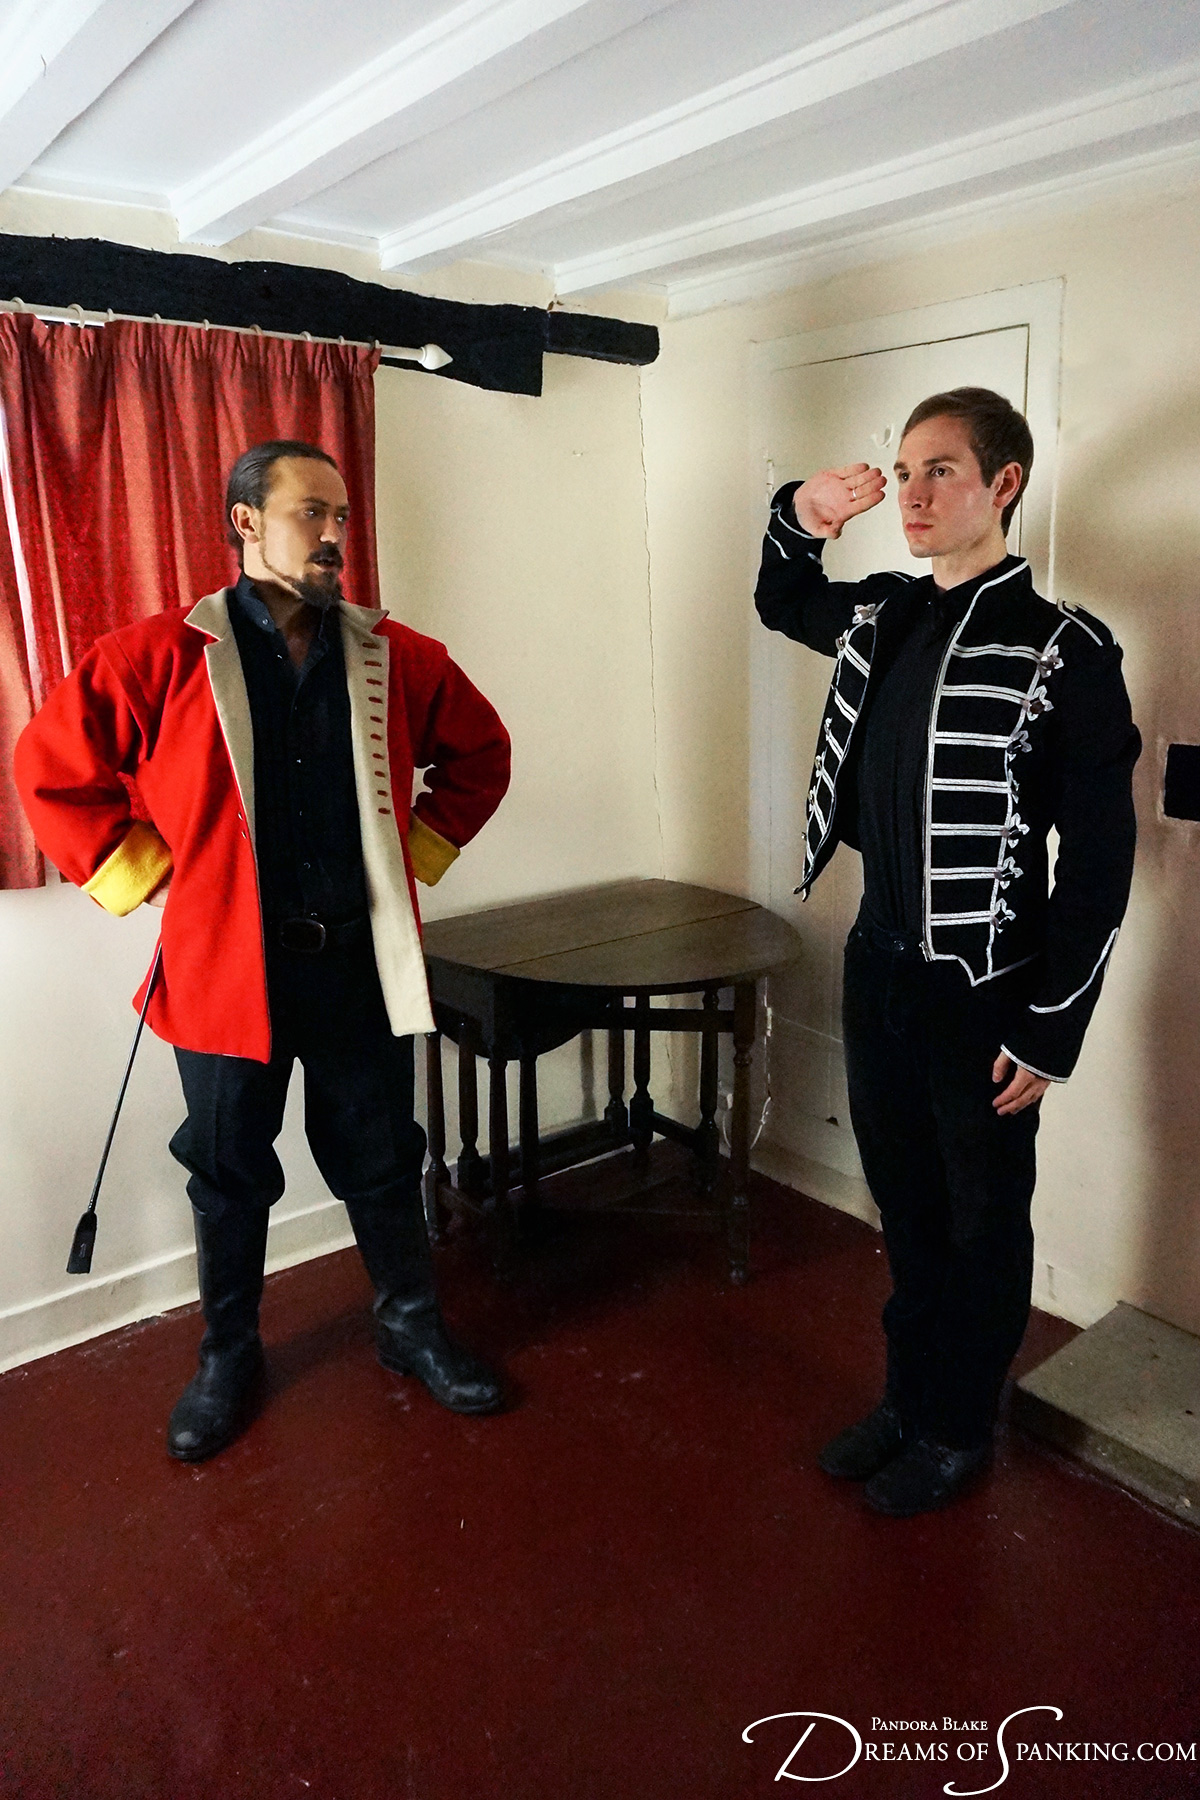 The young Lieutenant Shada salutes his commanding officer after a stern military punishment